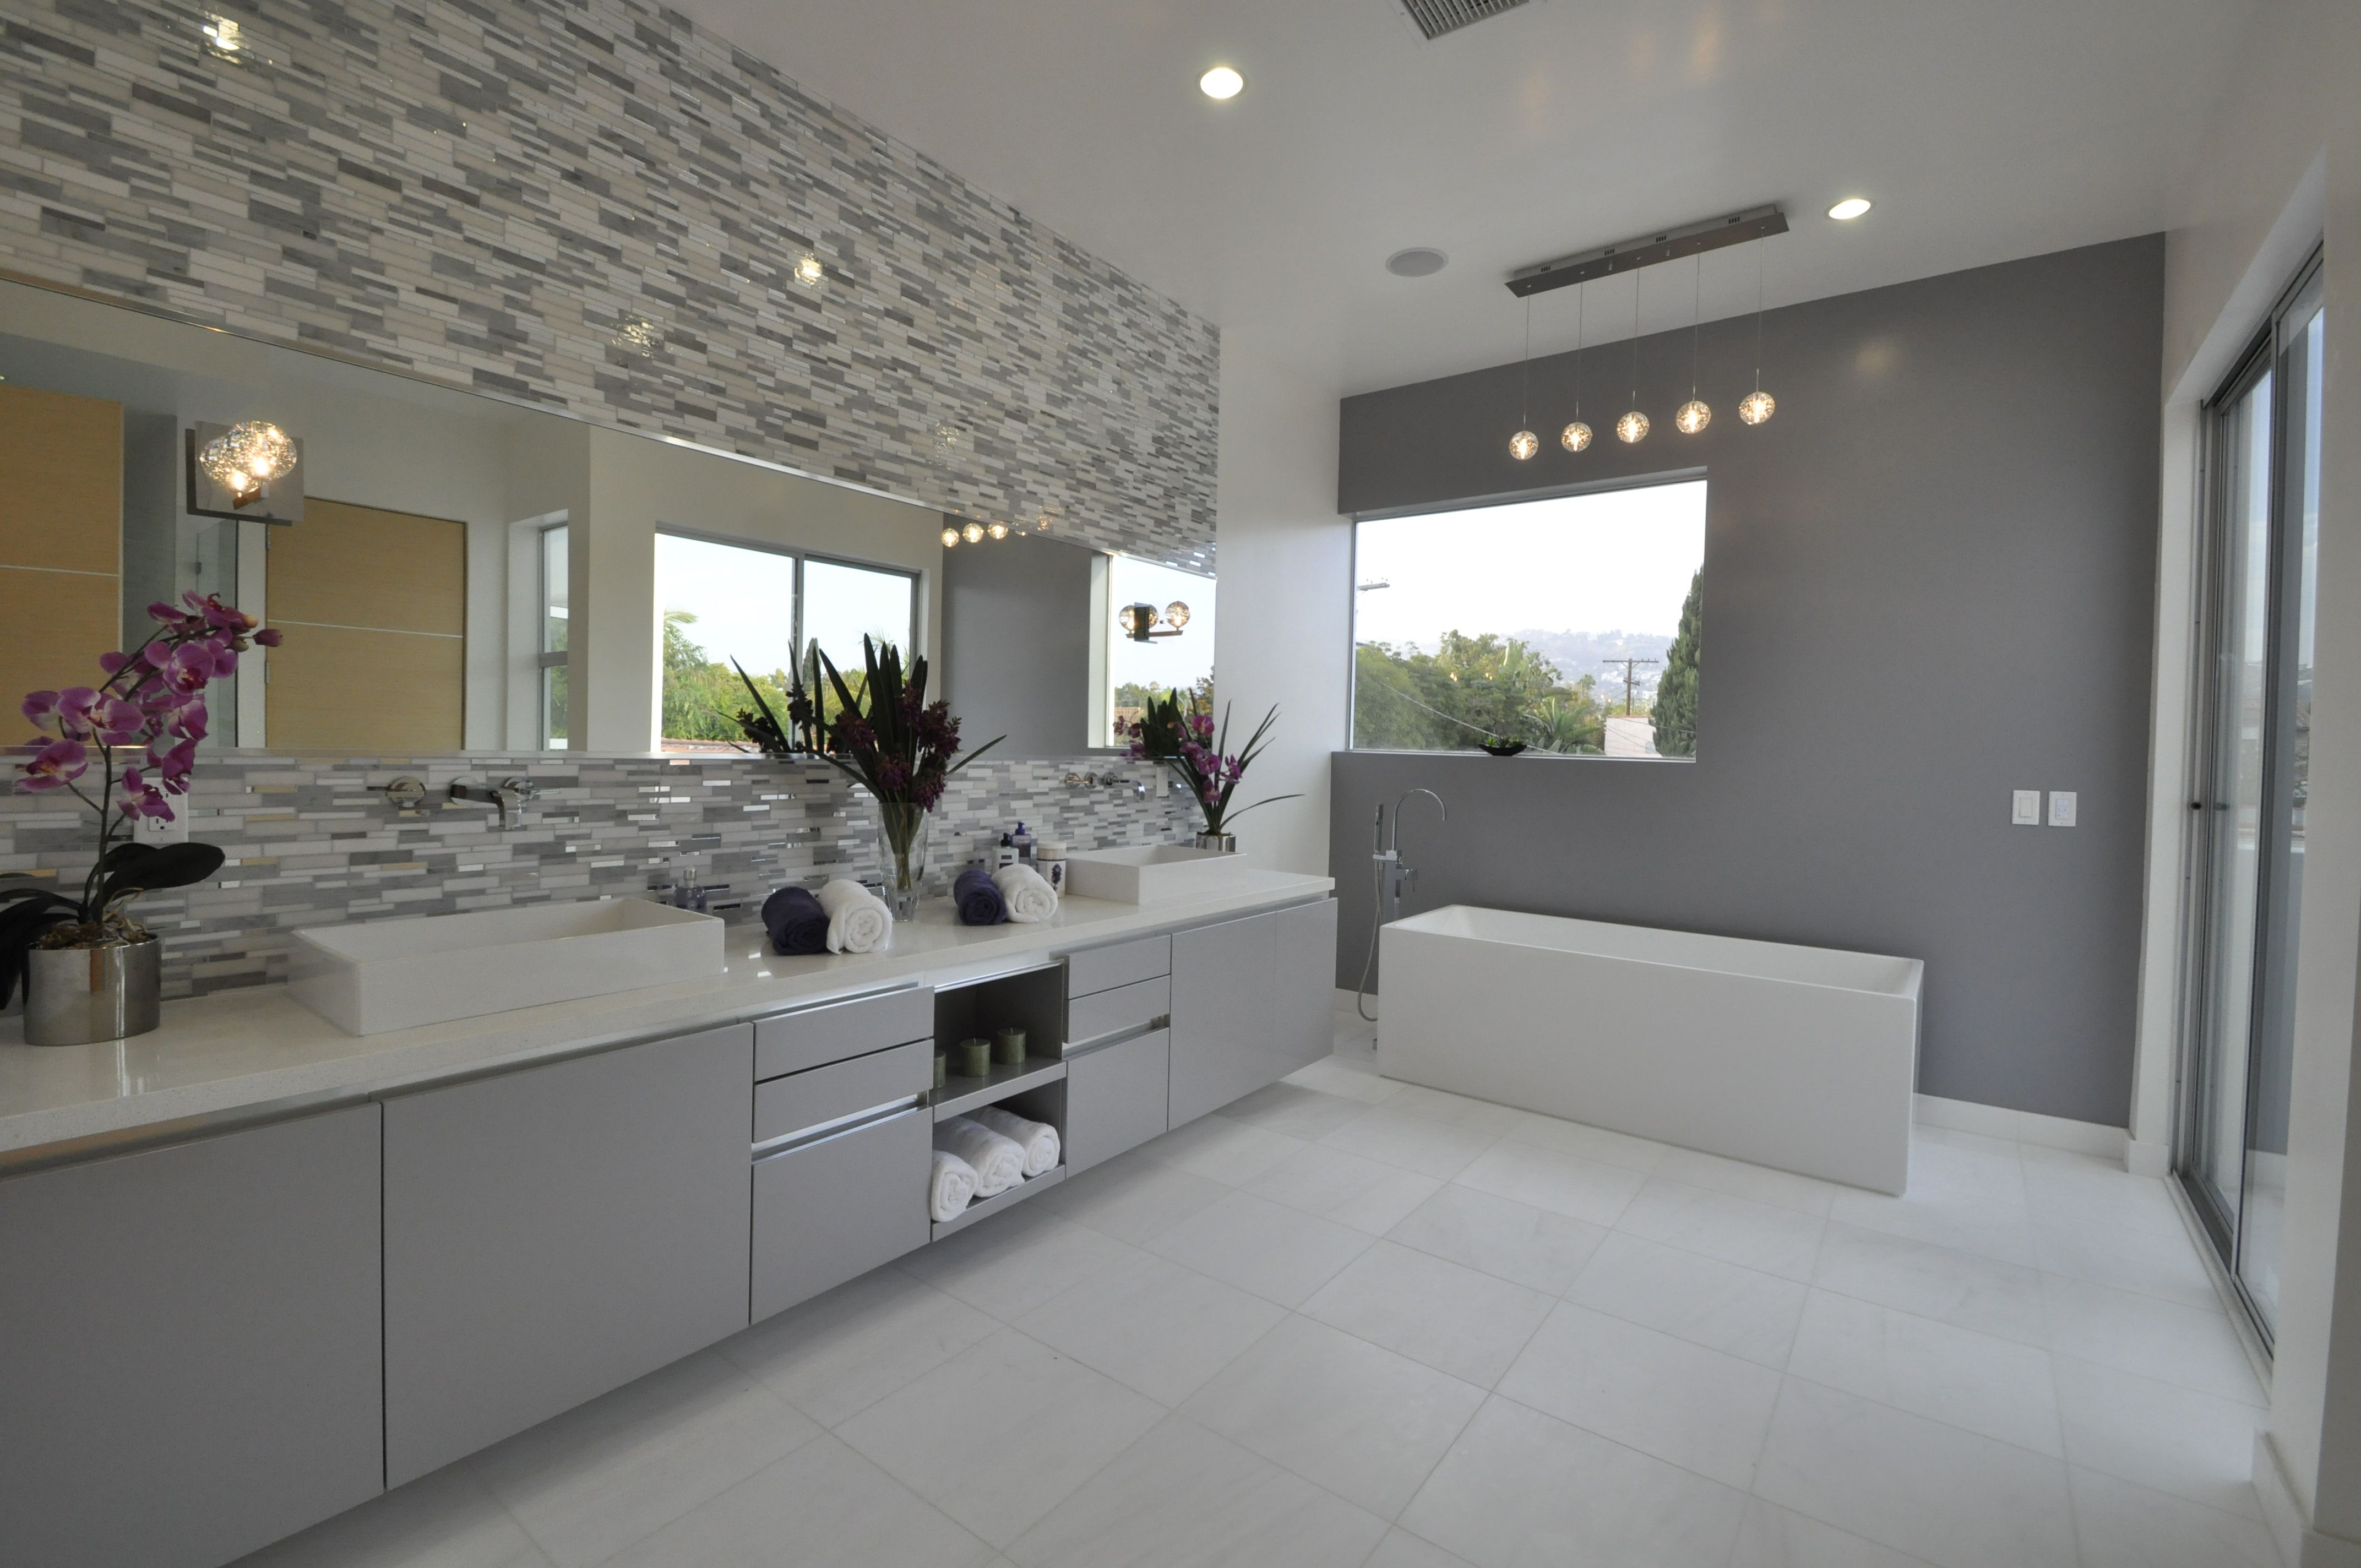 Symmetrical bathroom design is completed with the ET2 Orb lighting fixture.  See this collection at